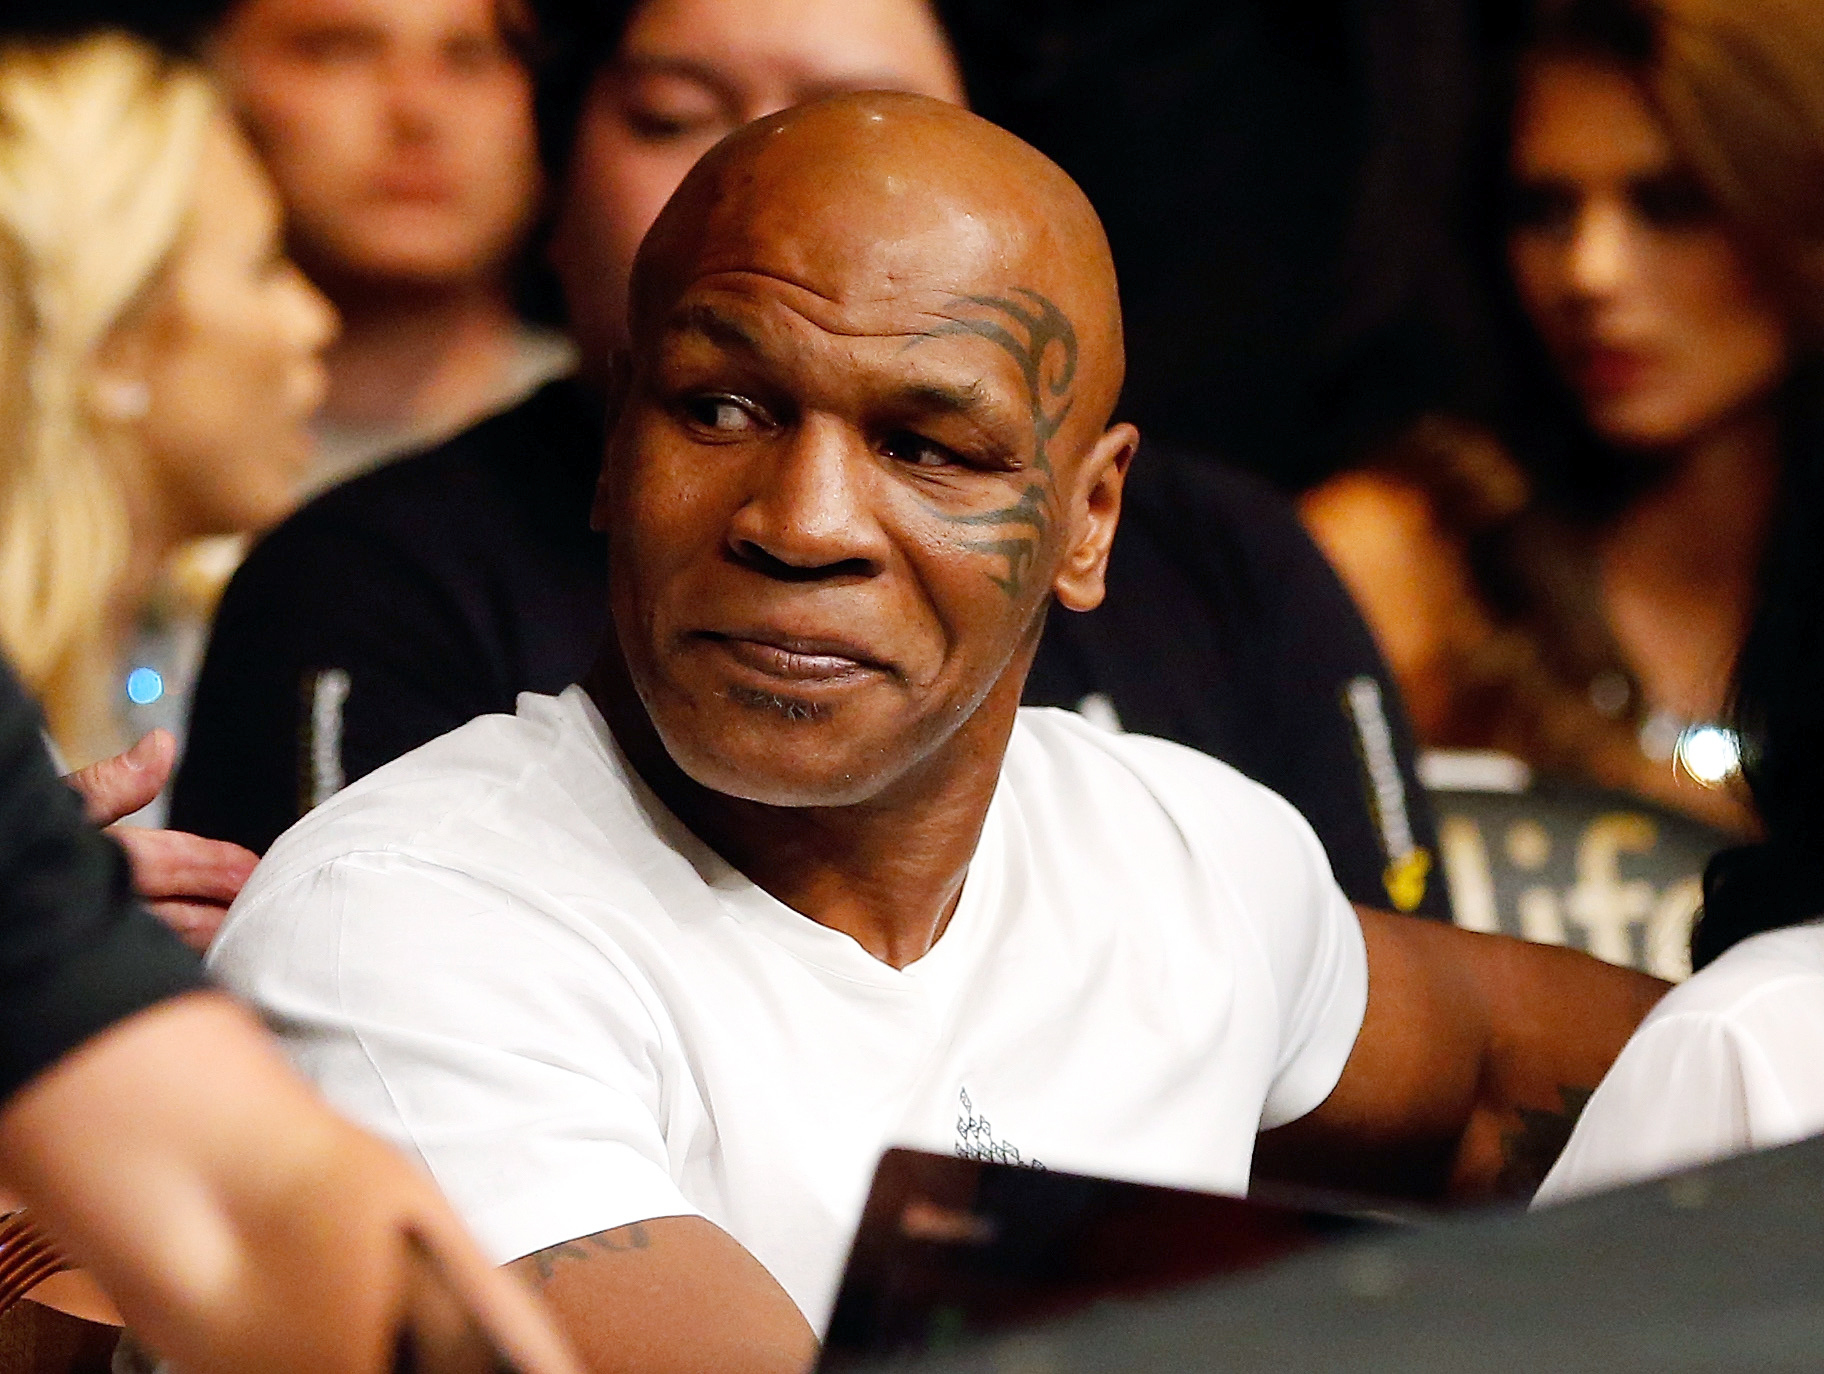 Former boxing champion Mike Tyson at the UFC 189 event on July 11, 2015 in Las Vegas.